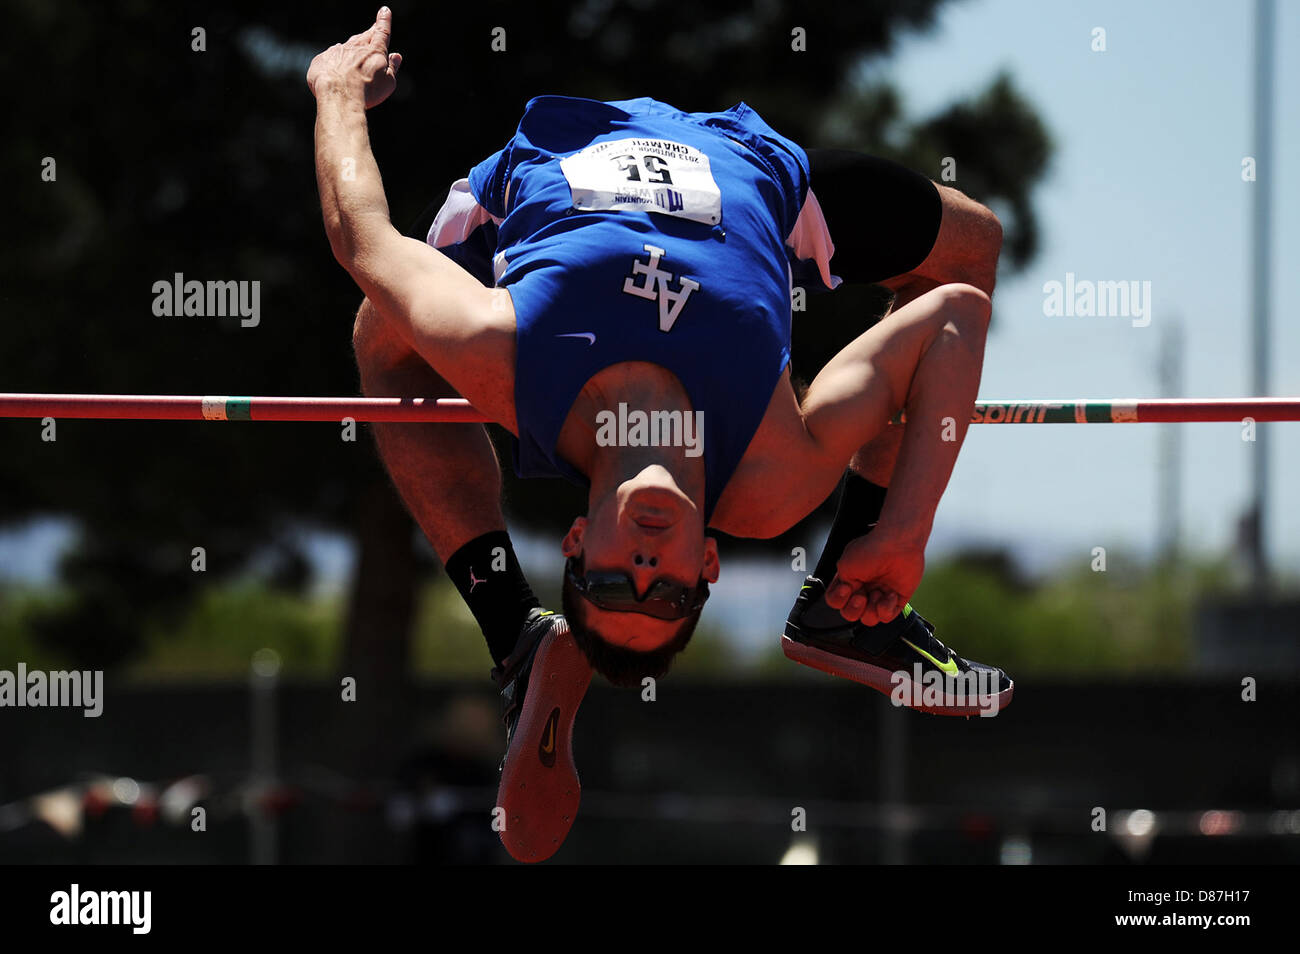 Mens High jump event - Stock Image